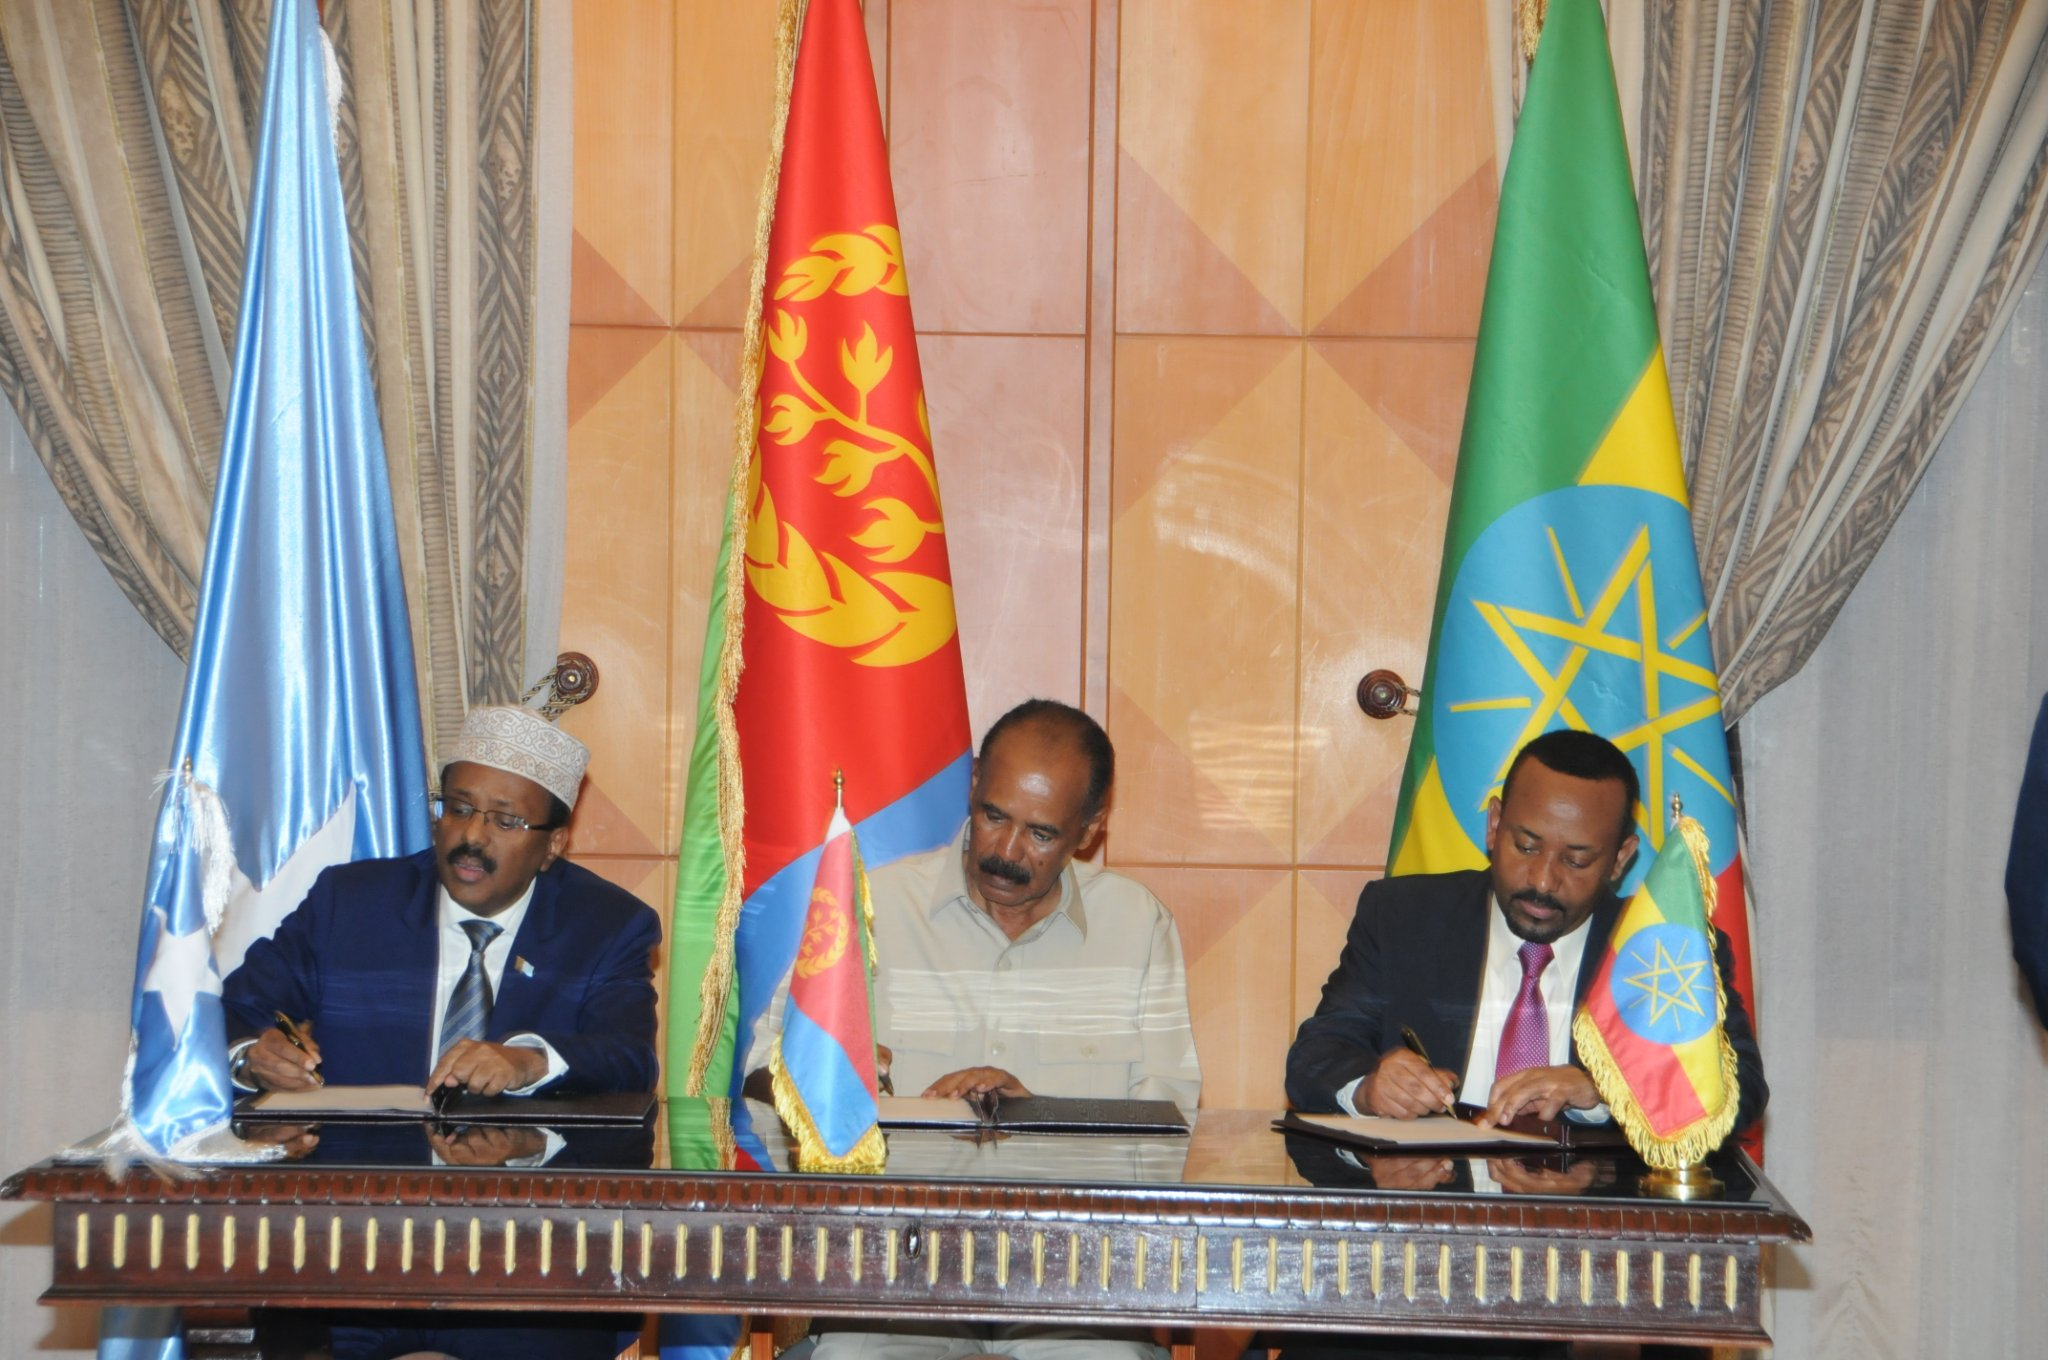 Ethiopia to set up a base in Somalia after Amisom departs - Horn